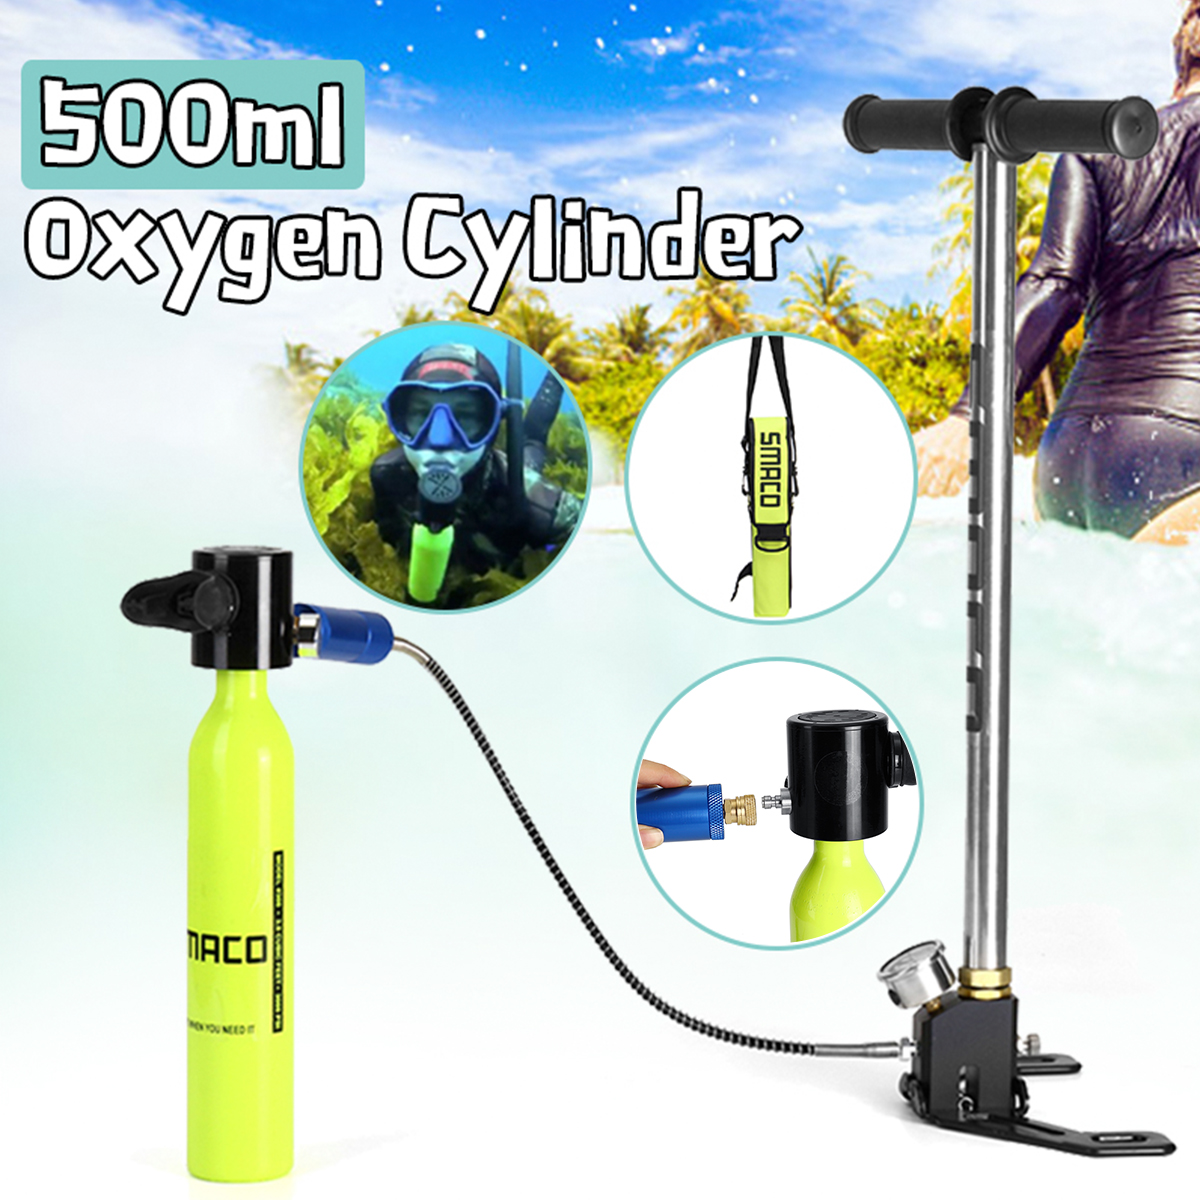 0.5l Portable Mini Scuba Oxygen Cylinder Air Tanks Diving Equipment For Snorkeling Underwater Breathing Pump And Respirator Bag Crease-Resistance